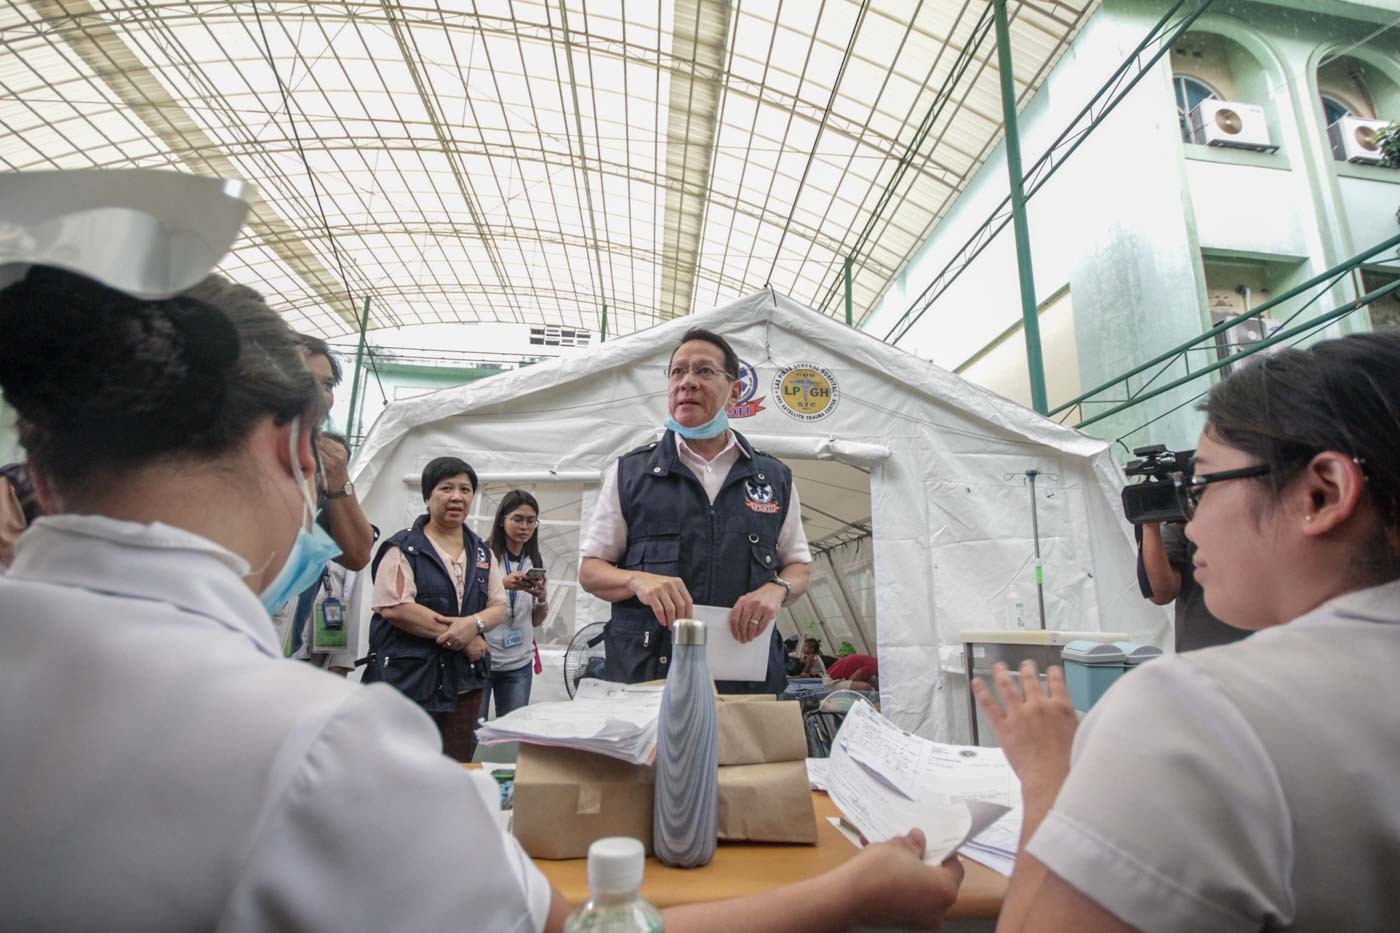 EXTRA MEASURES. Department of Health Secretary Francisco Duque inspects tents set up for measles patients at San Lazaro Hospital in Manila on February 13, 2019. Photo by Lito Borras/Rappler